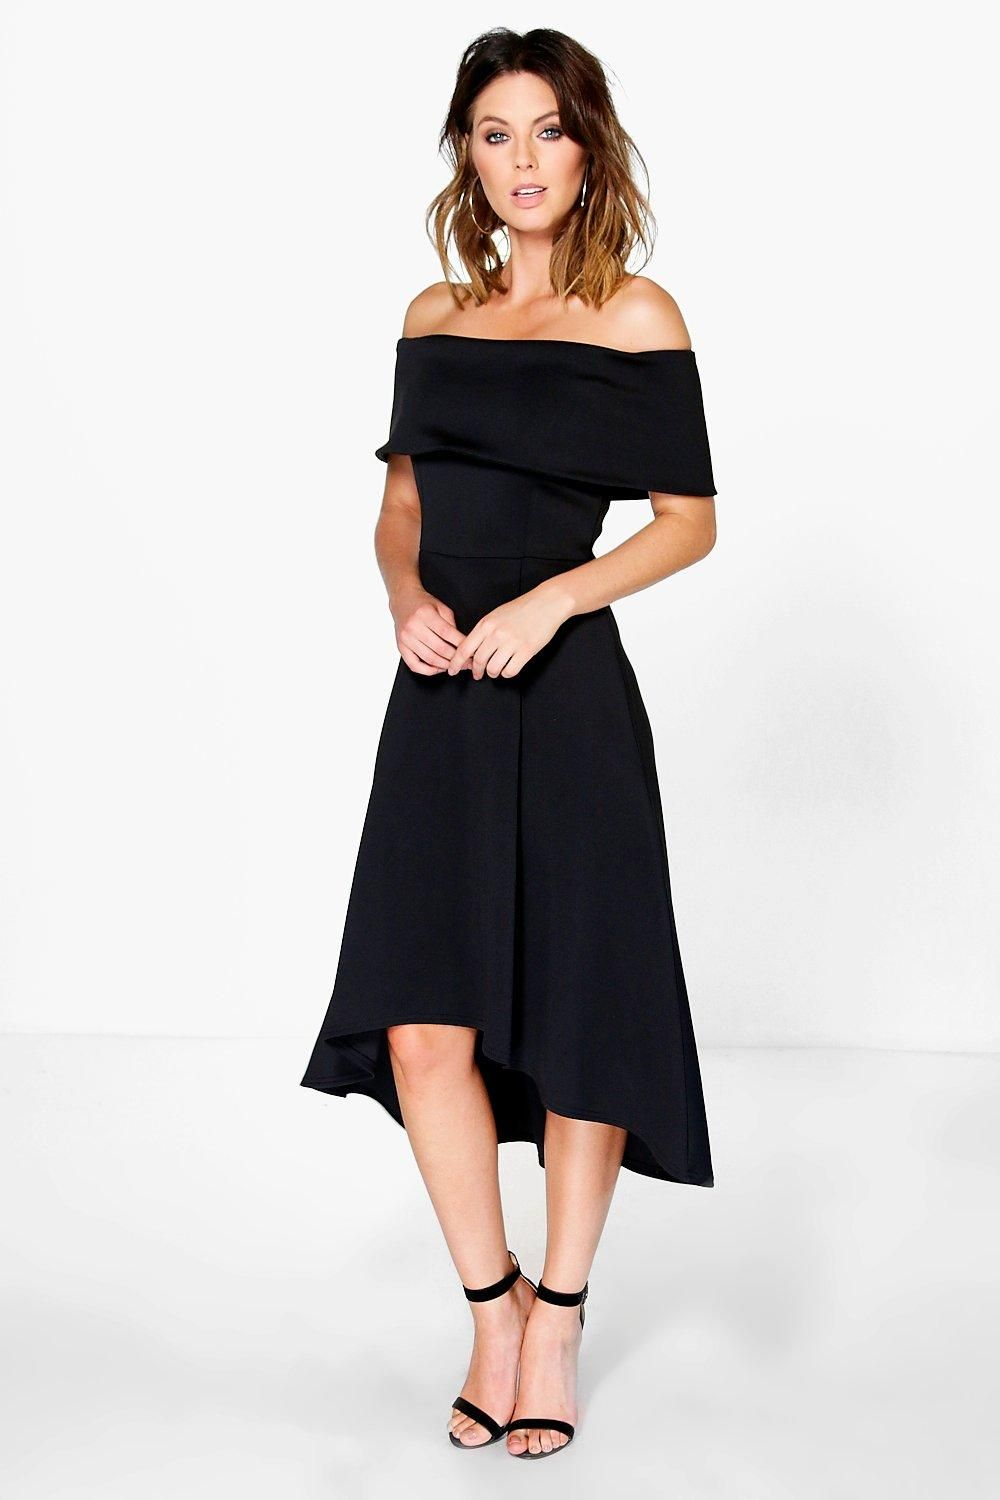 6a4930ba8 Luana Off The Shoulder Dip Hem Skater Dress in 2019 | Stitch Fix ...